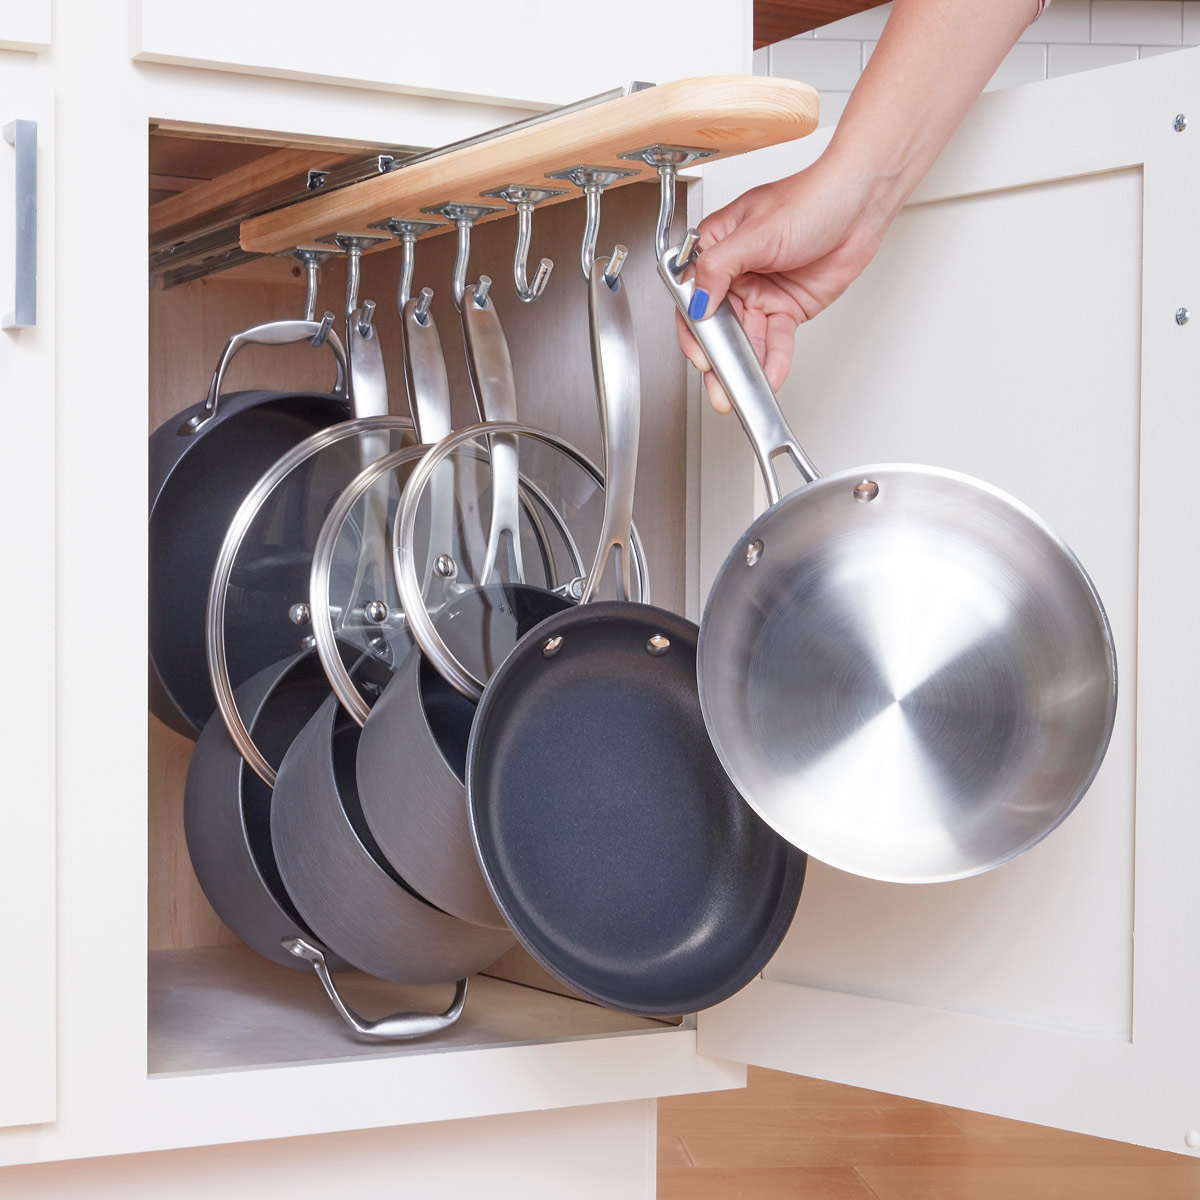 Everything about Getting Your Kitchen Organized by a Pot and Pan Rack